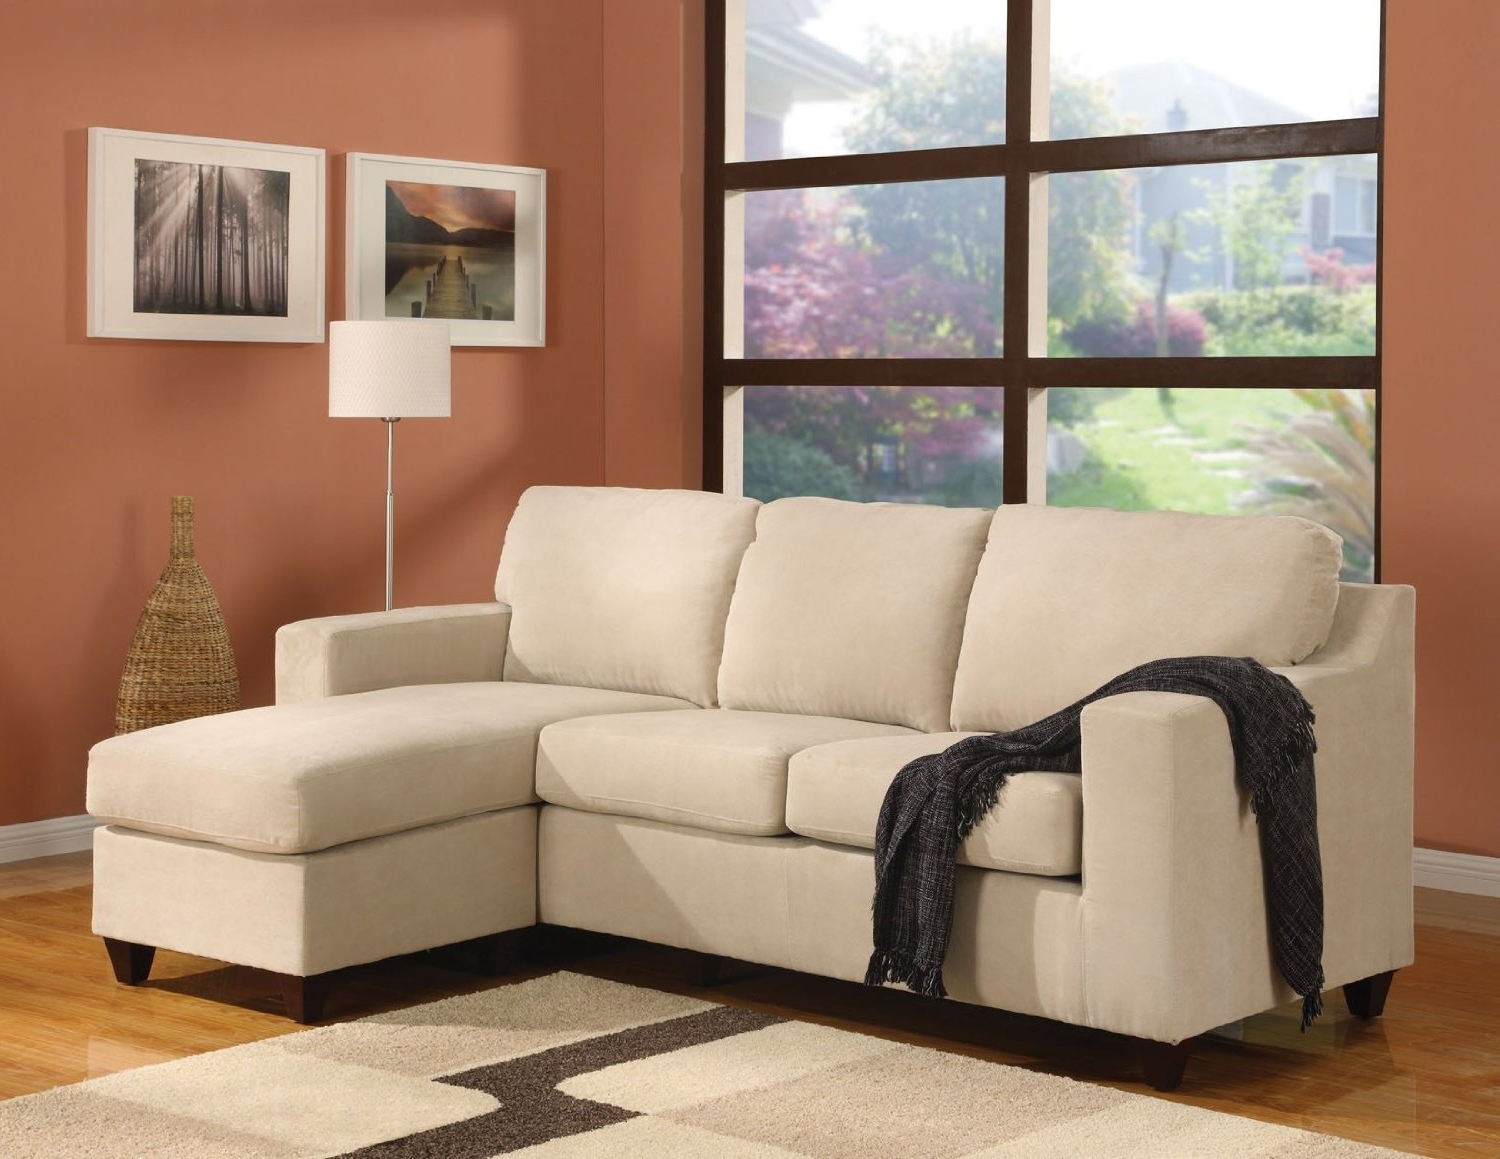 Best And Newest Awesome Small Sectional Sofa With Chaise Lounge Chairs (View 10 of 15)